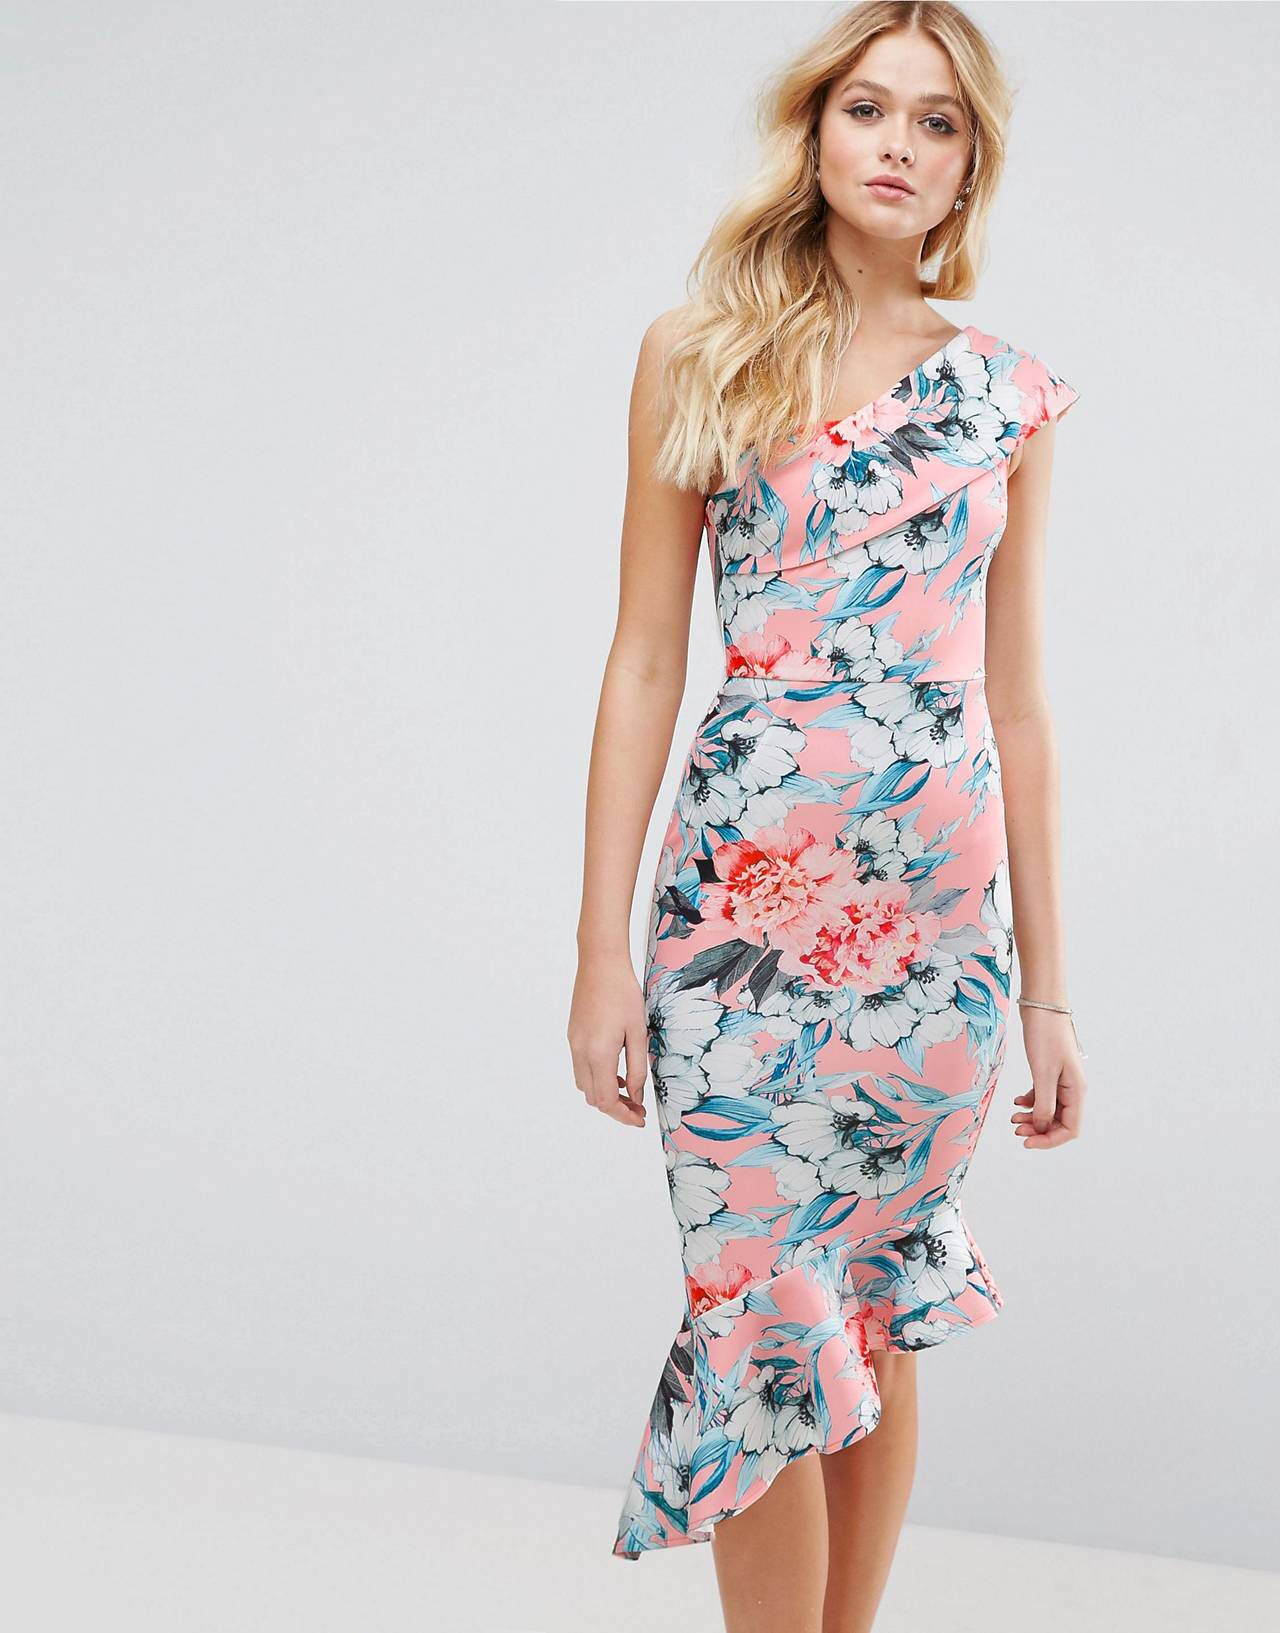 Best affordable wedding guest dresses  LOVE this from ASOS  Beautiful Dresses  Pinterest